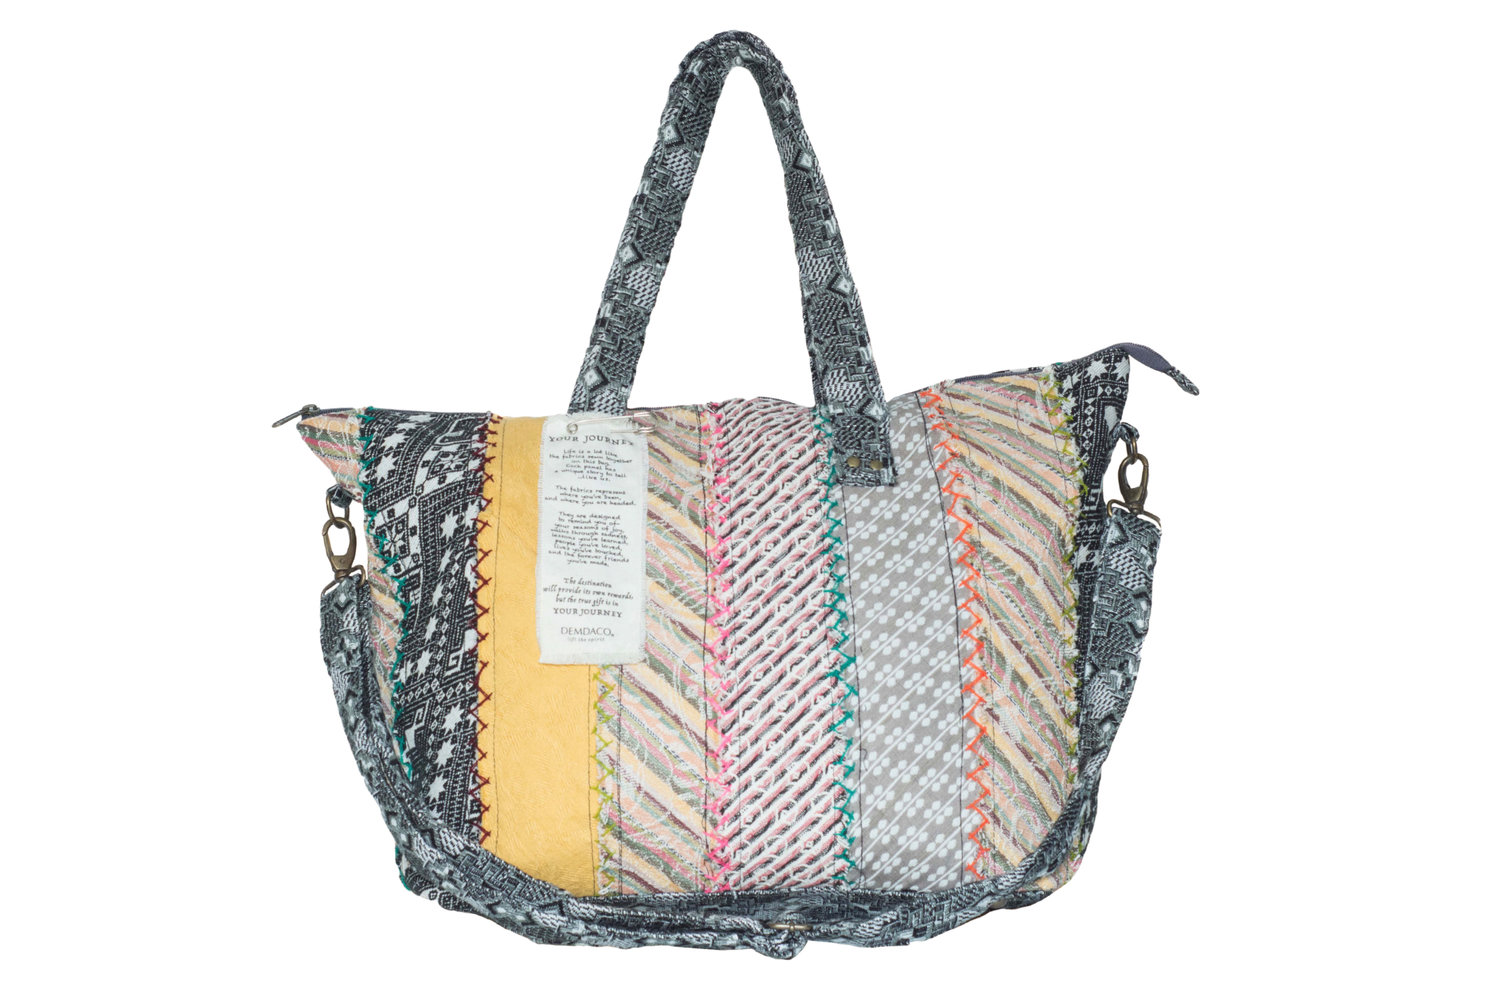 Demdaco Overnight Travel Bag in Multi, $85